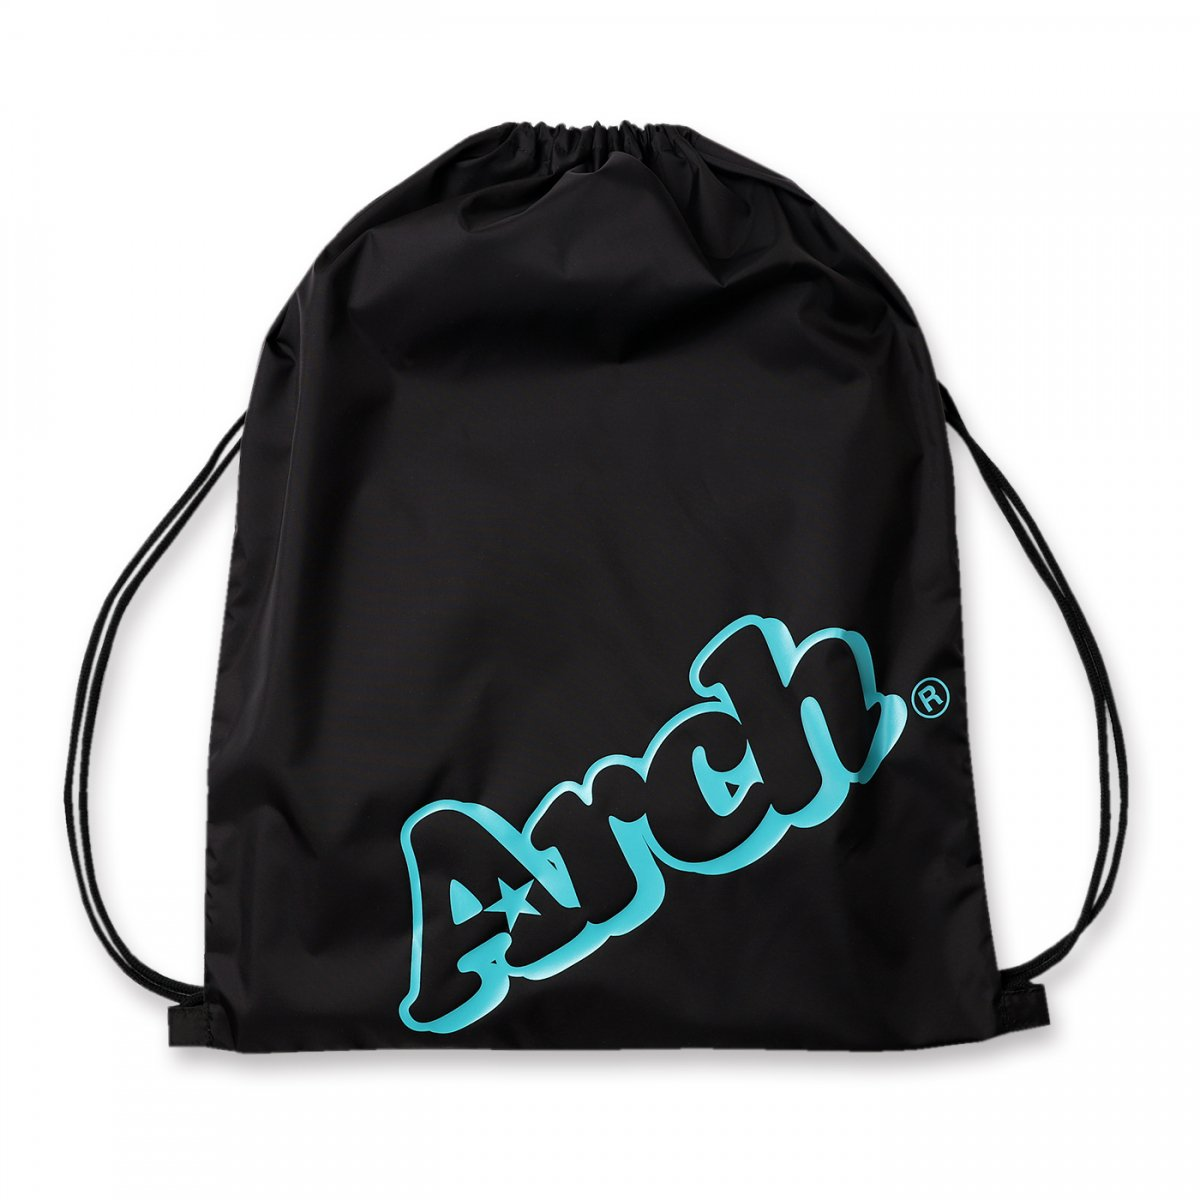 sloping logo gym sack【black/turquoise】